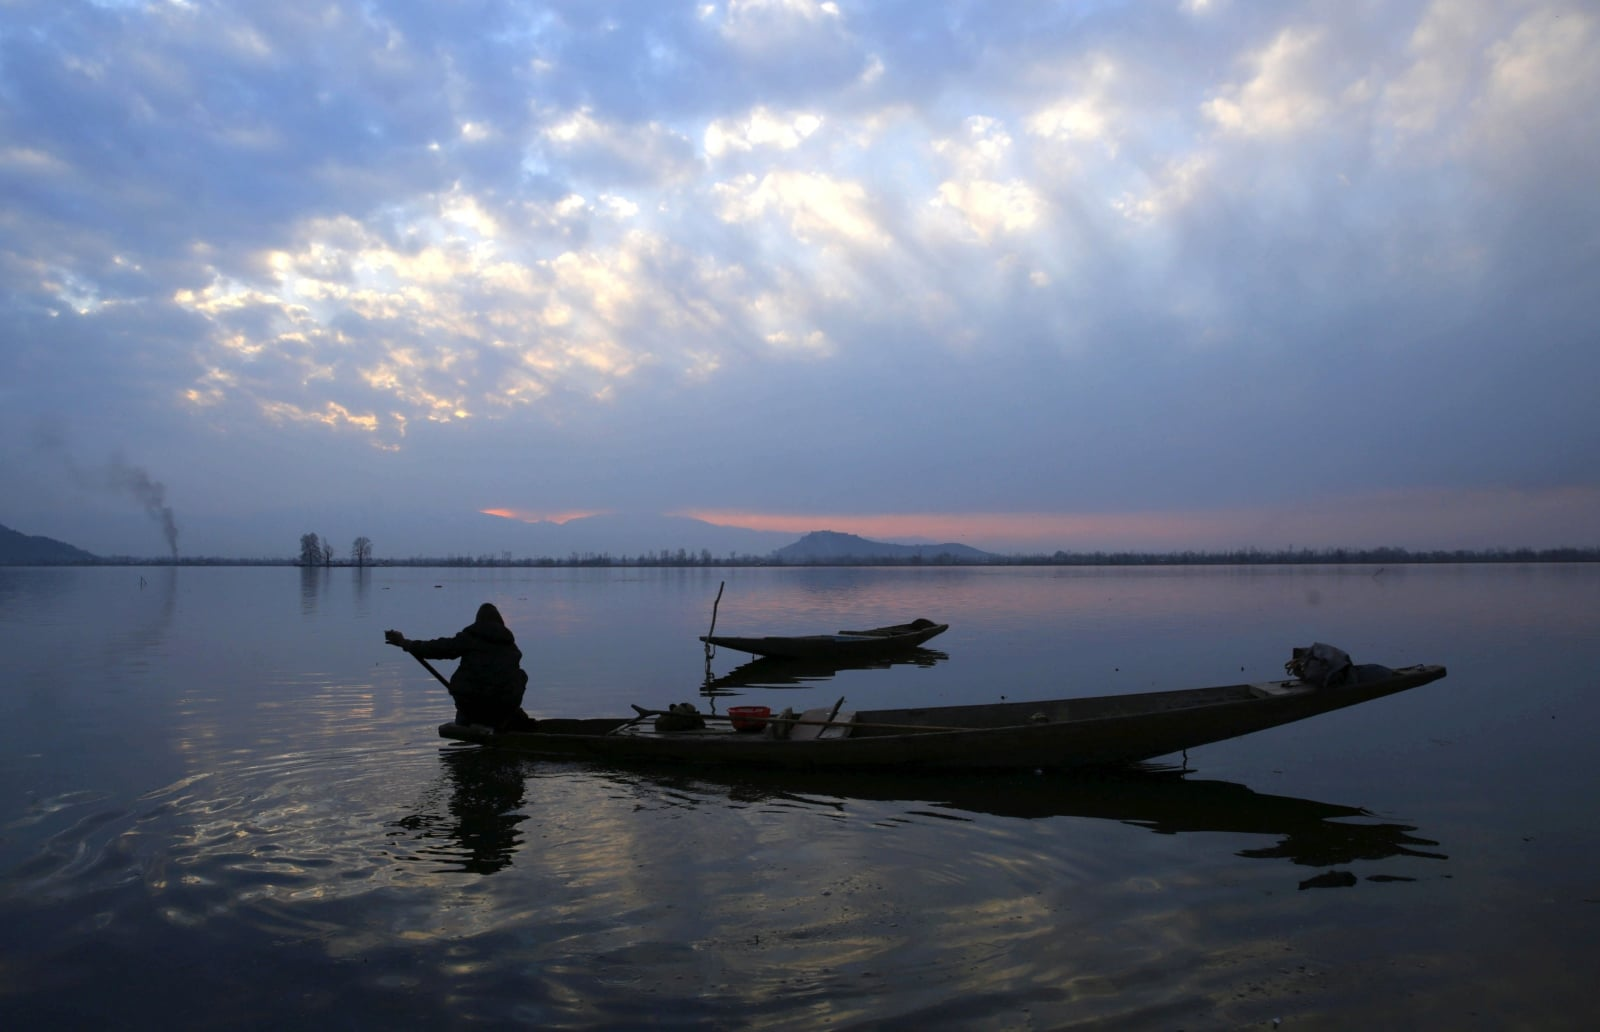 epa06502887 A Kashmiri boatman rows his boat in the waters of Dal Lake at sunset in Srinagar, the summer capital of Indian Kashmir, 07 February 2018. Kashmir continues to witness a spell of dry and cold weather with warm day time temperatures and cold night temperatures.  EPA/FAROOQ KHAN Dostawca: PAP/EPA.